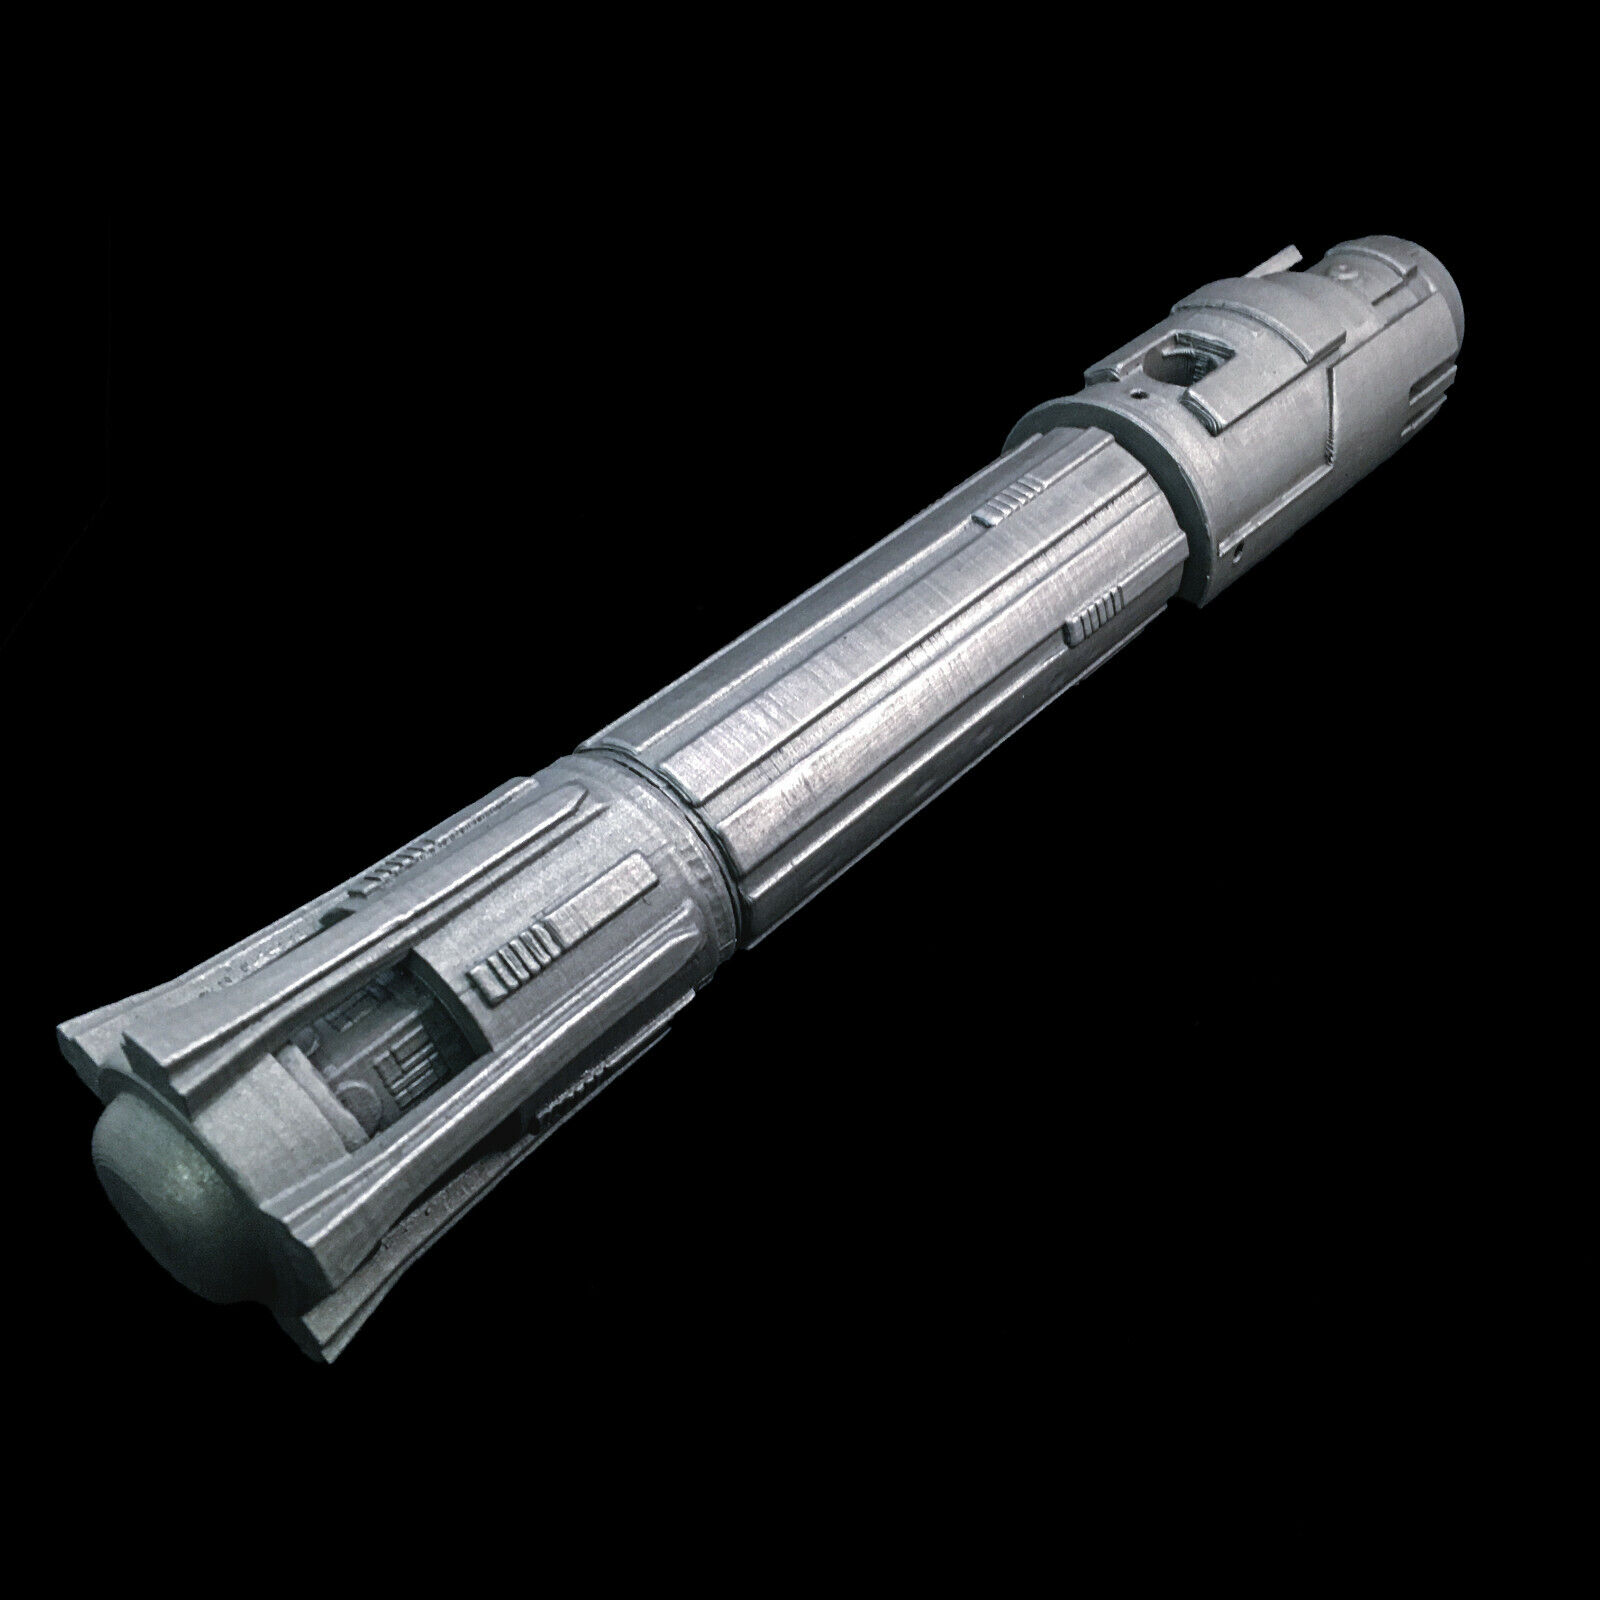 Custom Metal Lightsaber Hilt Replica Prop Fabrication Services Built To Order - $149.99